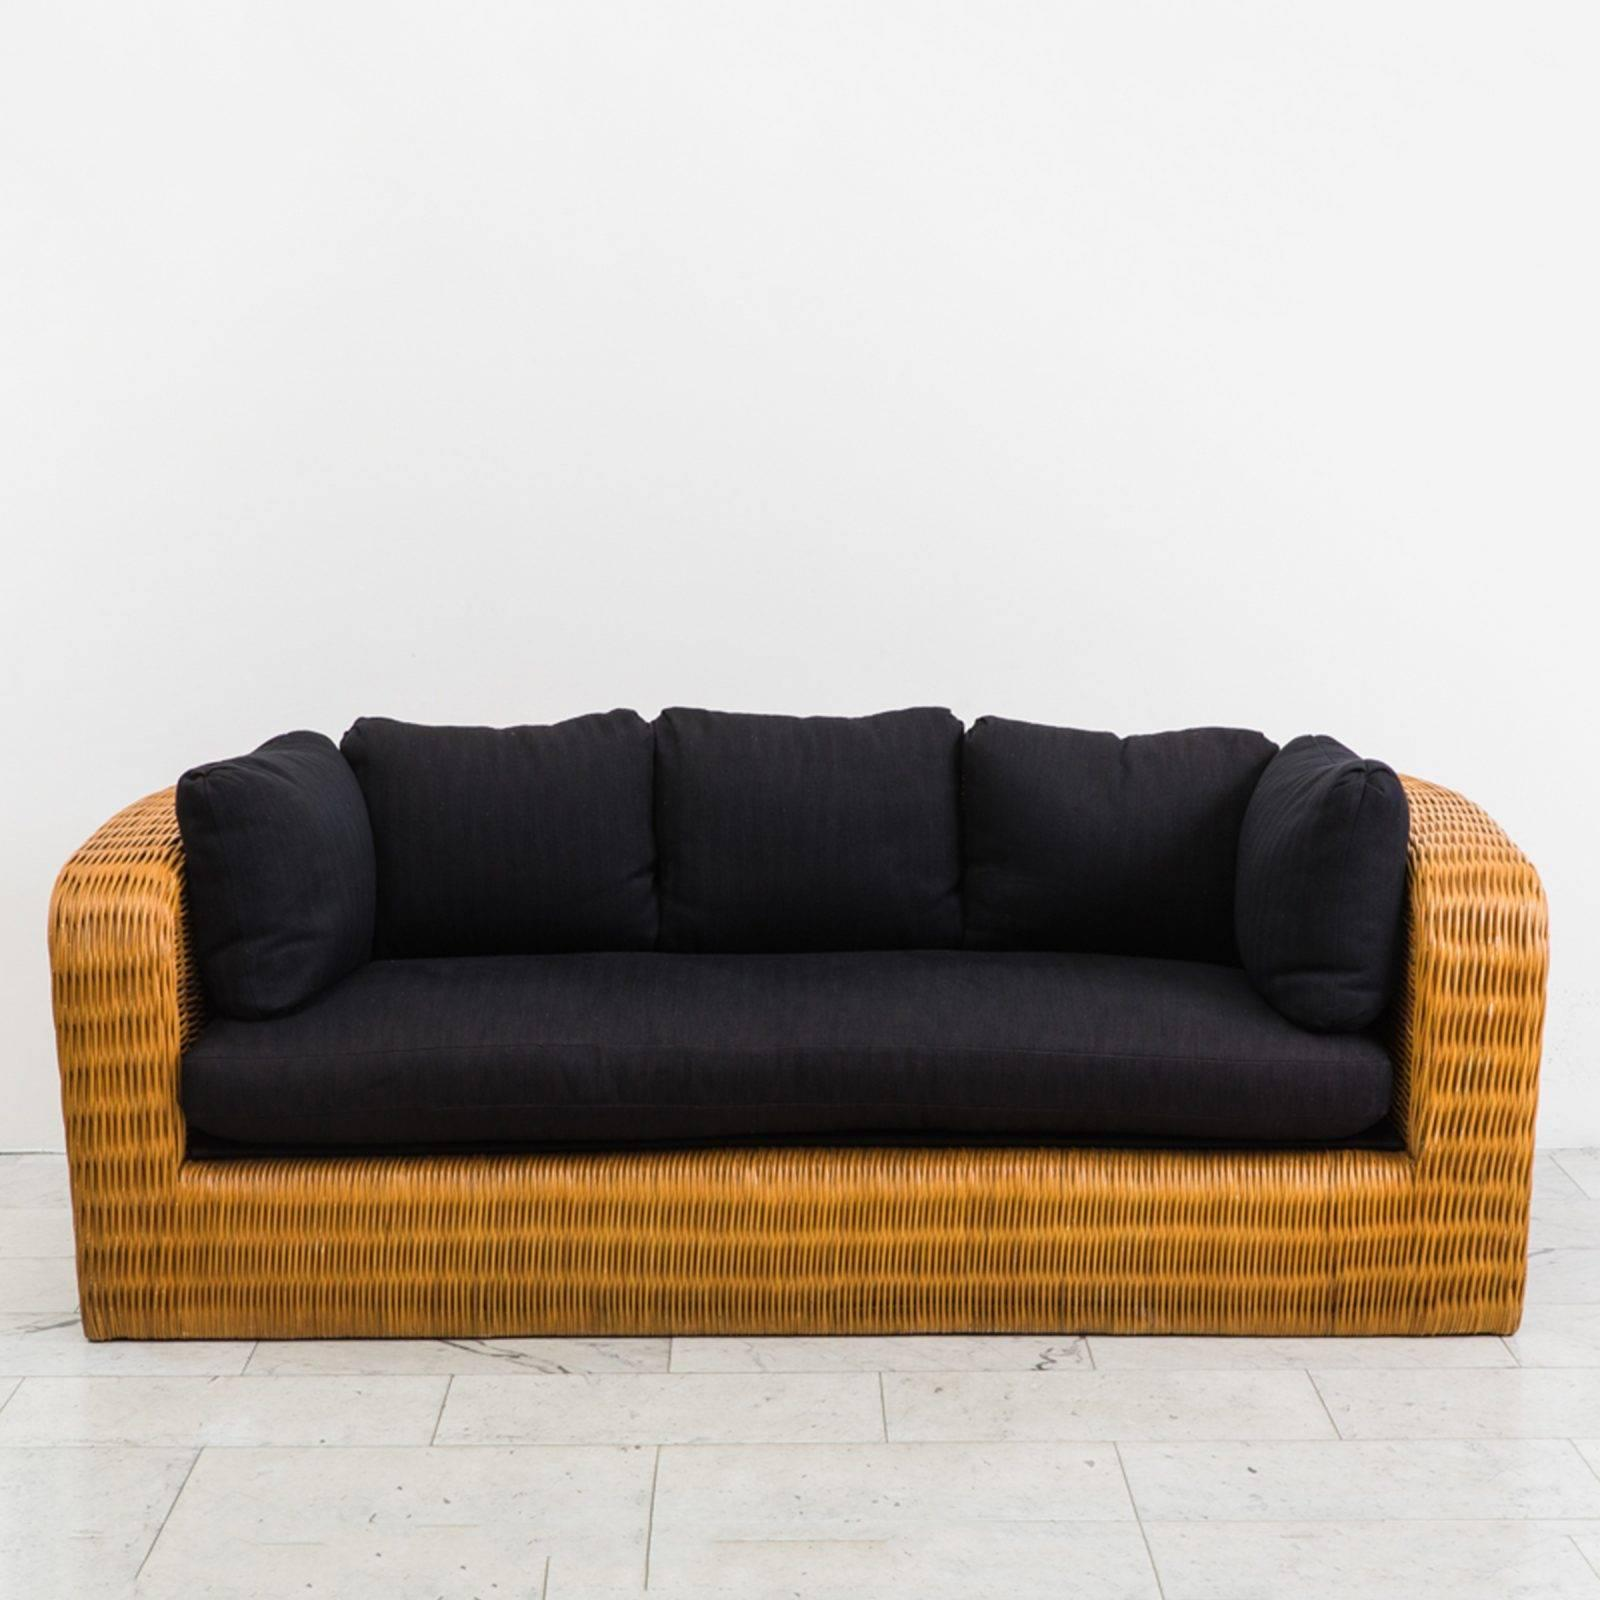 Karl Springer, Wicker Pullman Sofa, USA, 1985